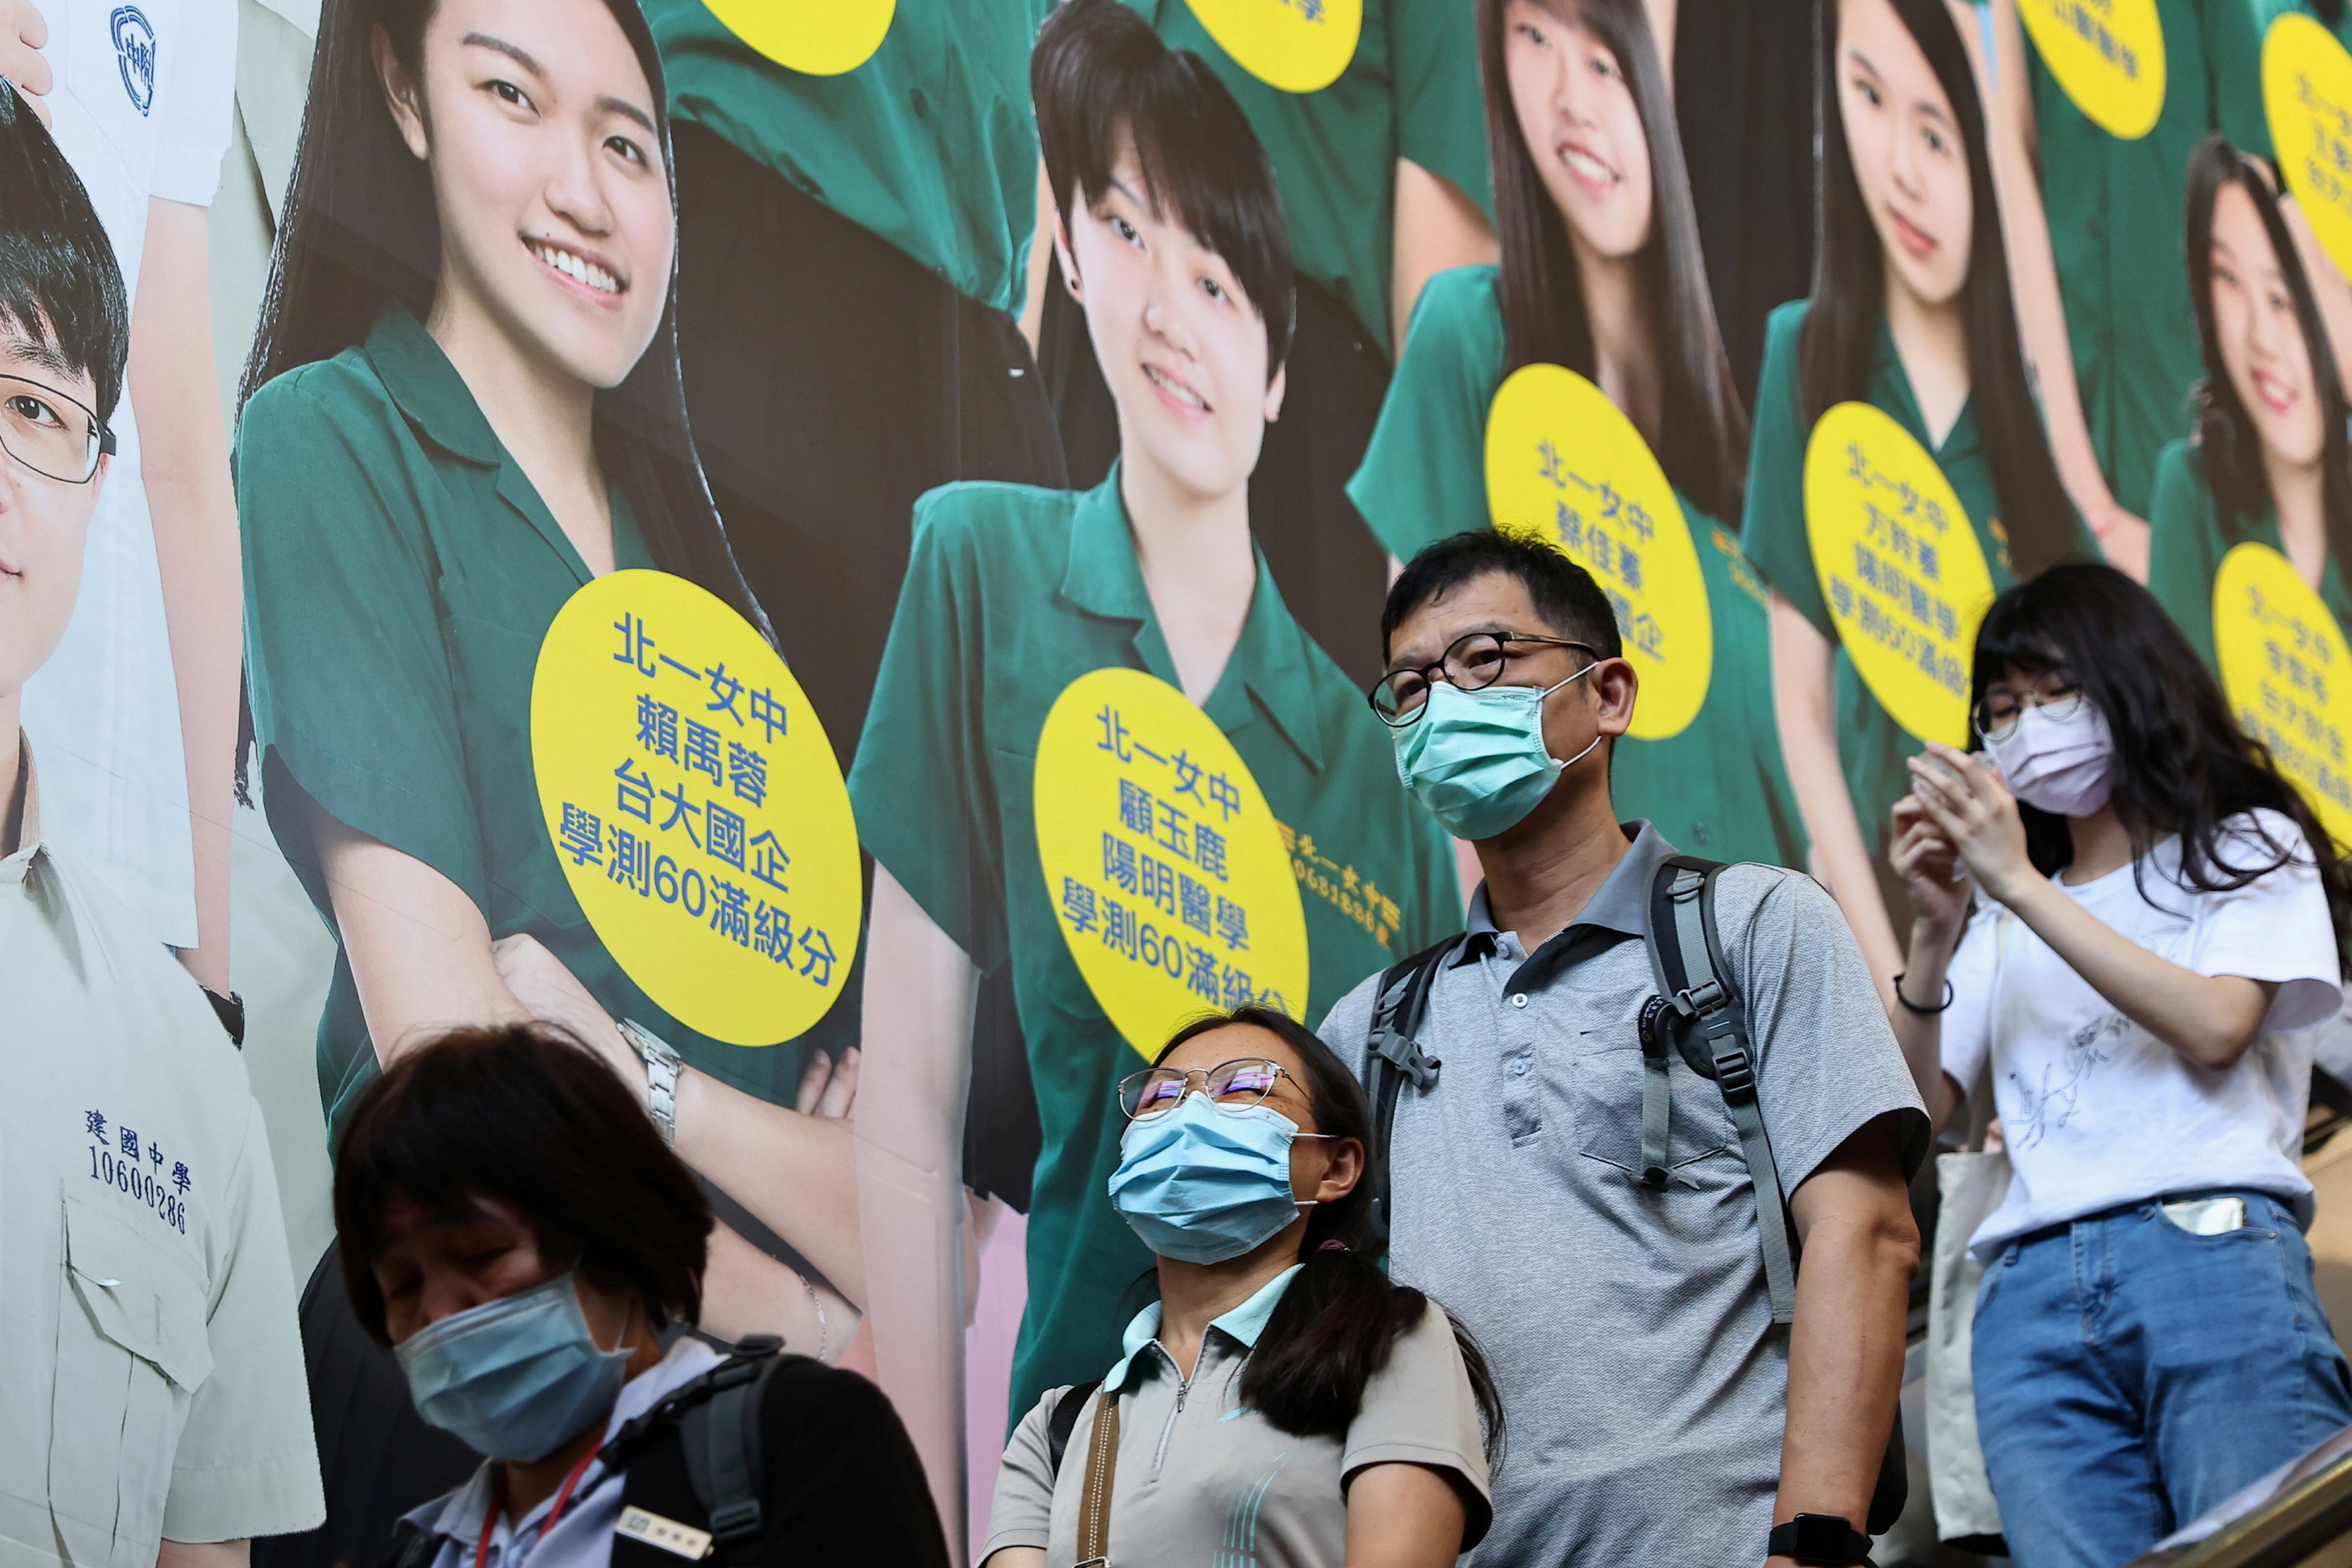 People wear protective face masks while heading in a metro station following the outbreak of  coronavirus disease (COVID-19), in Taipei, Taiwan, May 12, 2021. REUTERS/Ann Wang